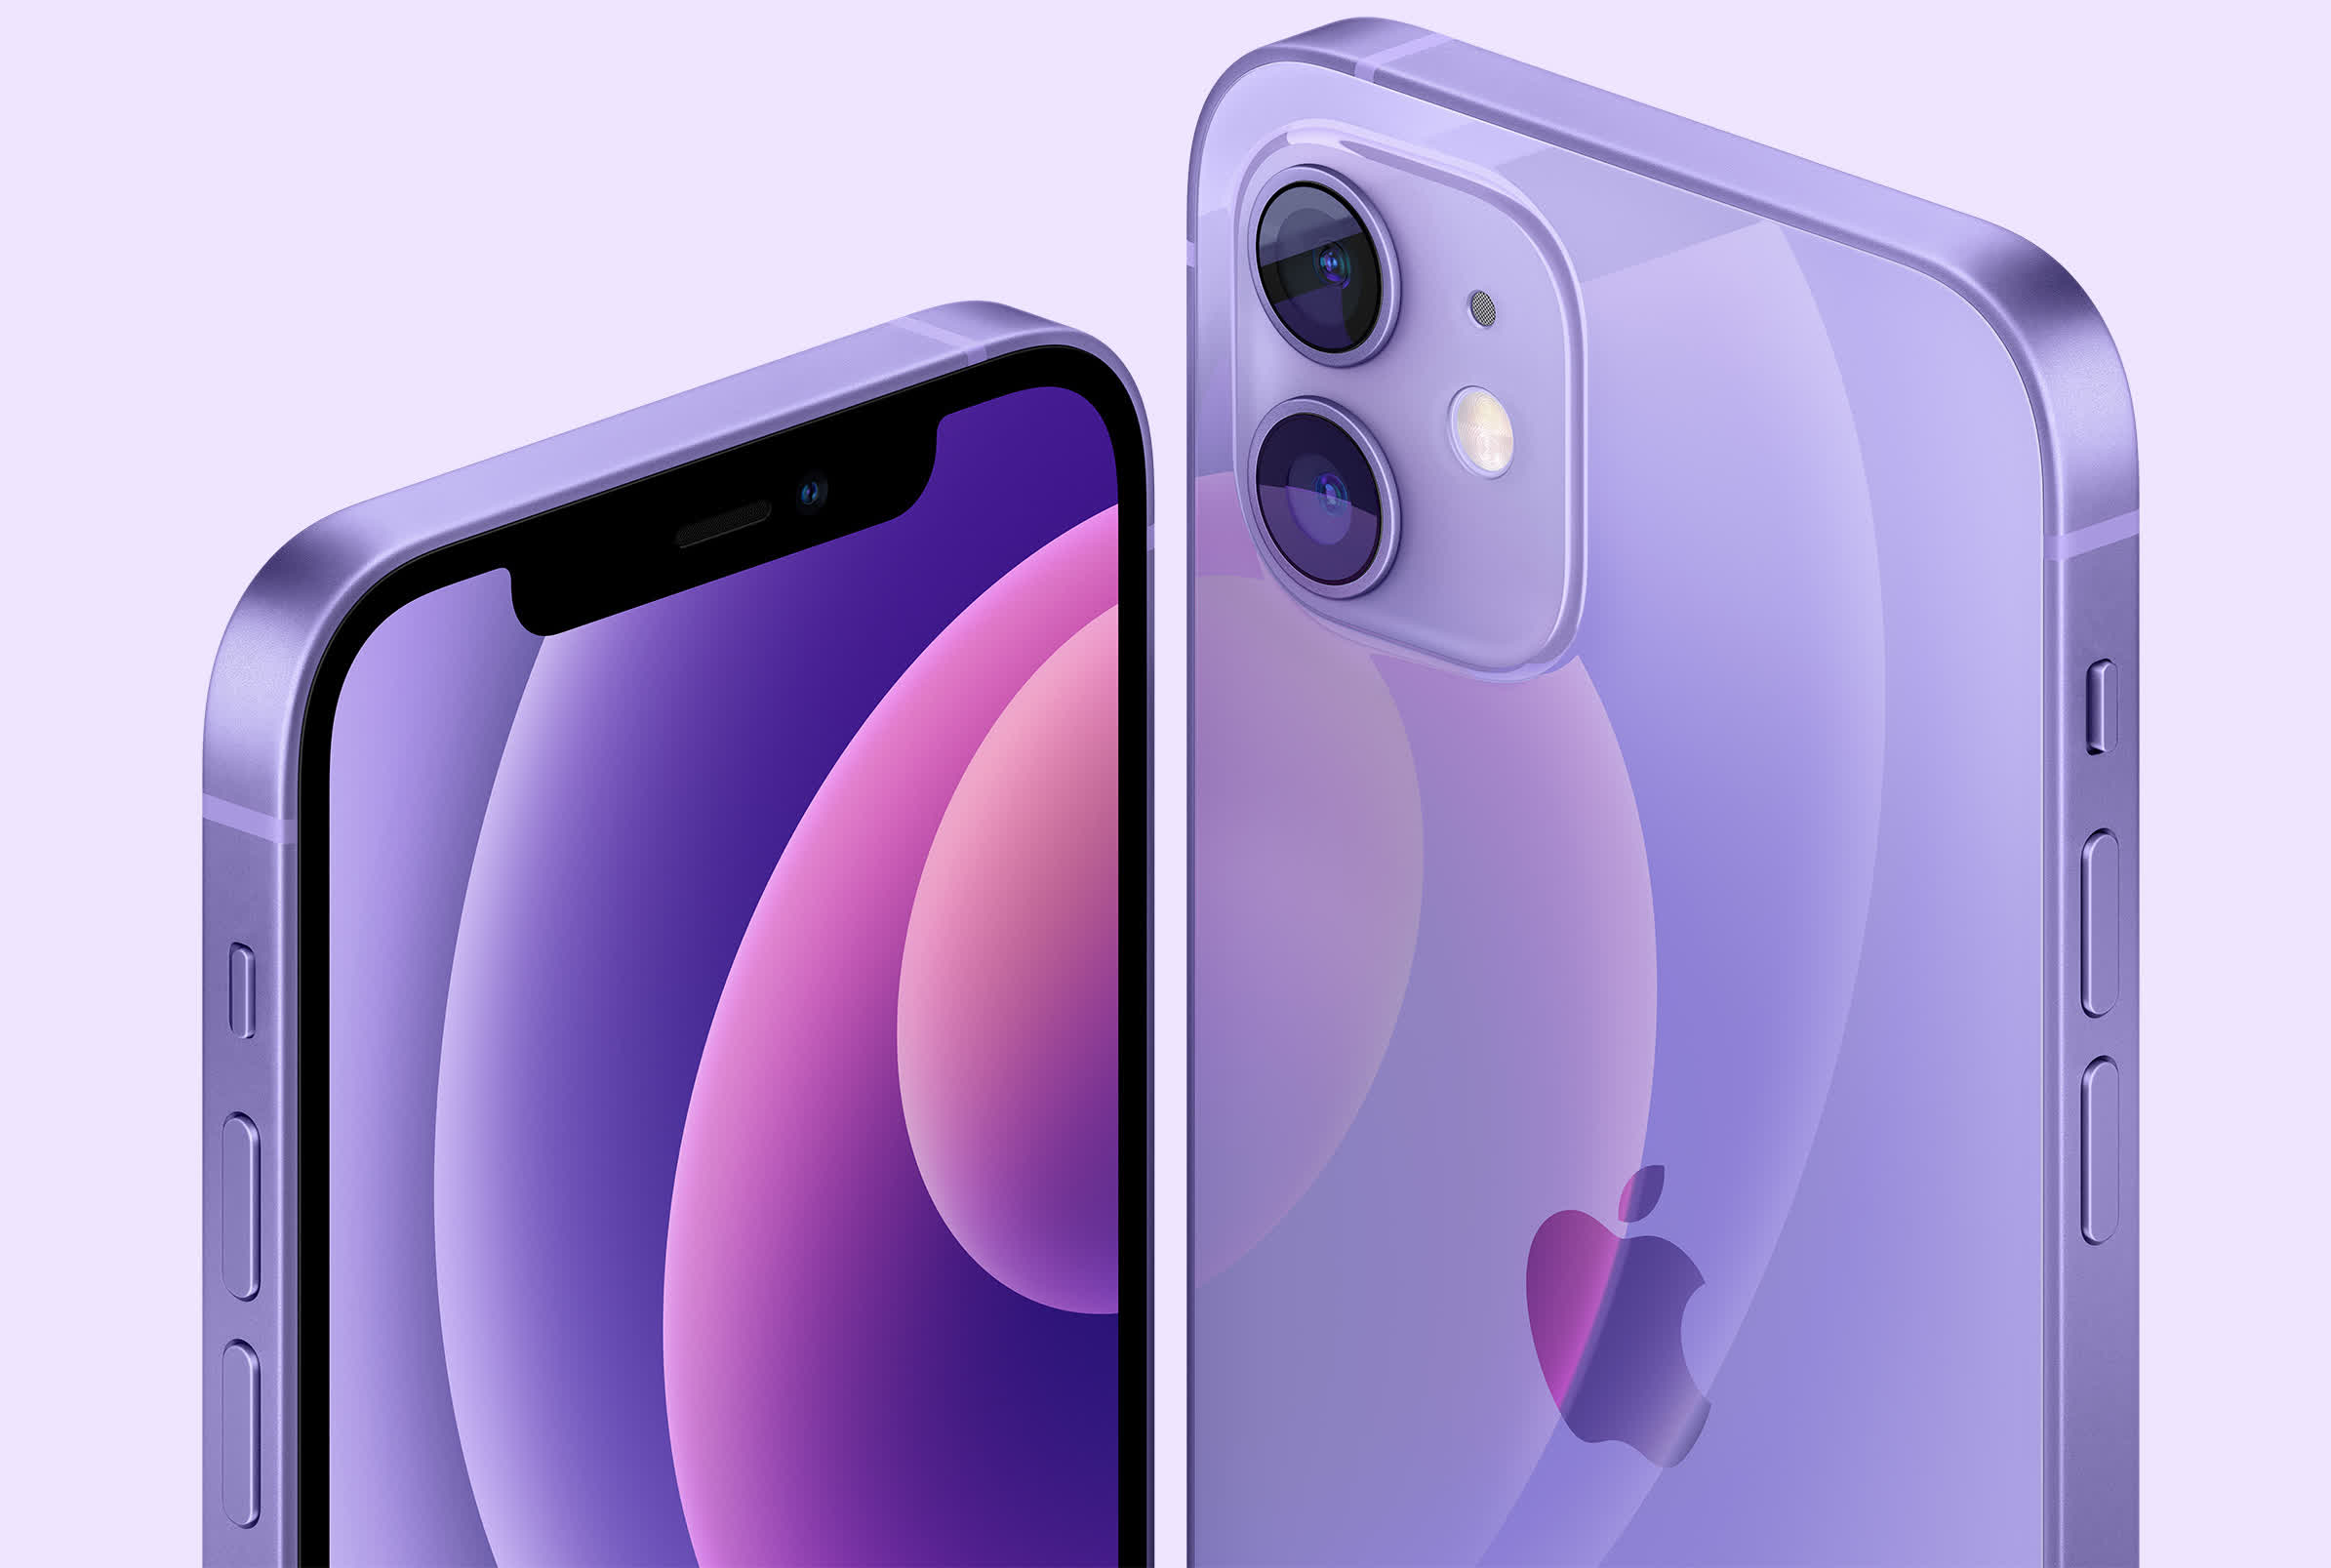 iPhone 12 mini is a sales flop, iPhone 11 still selling well